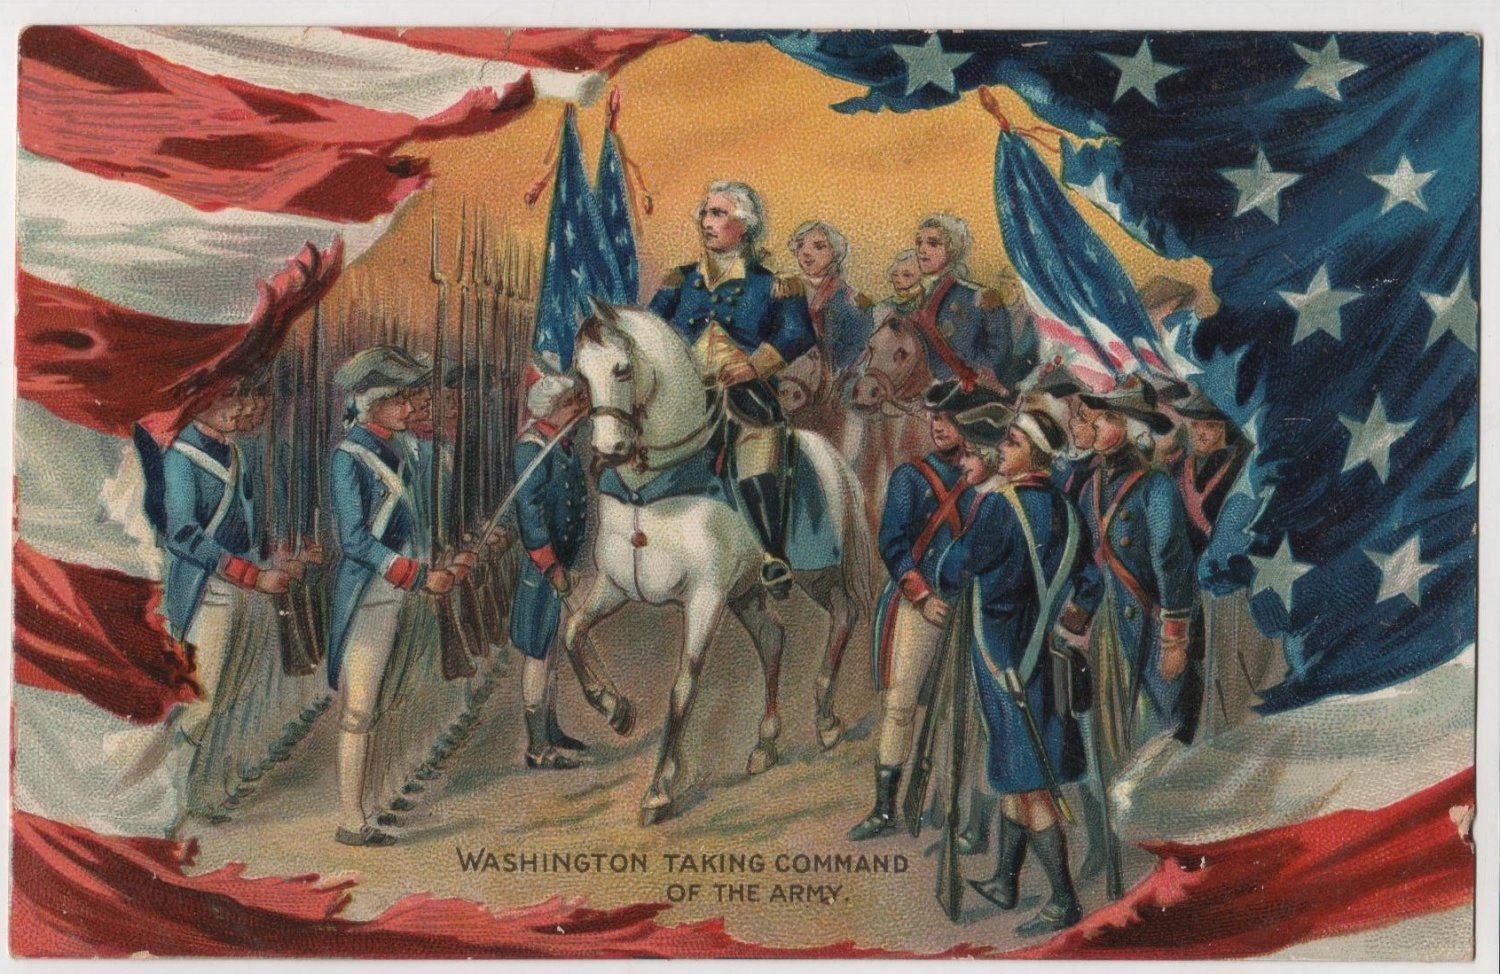 Geo. Washington Bday Card, Taking Command of Army c.1908